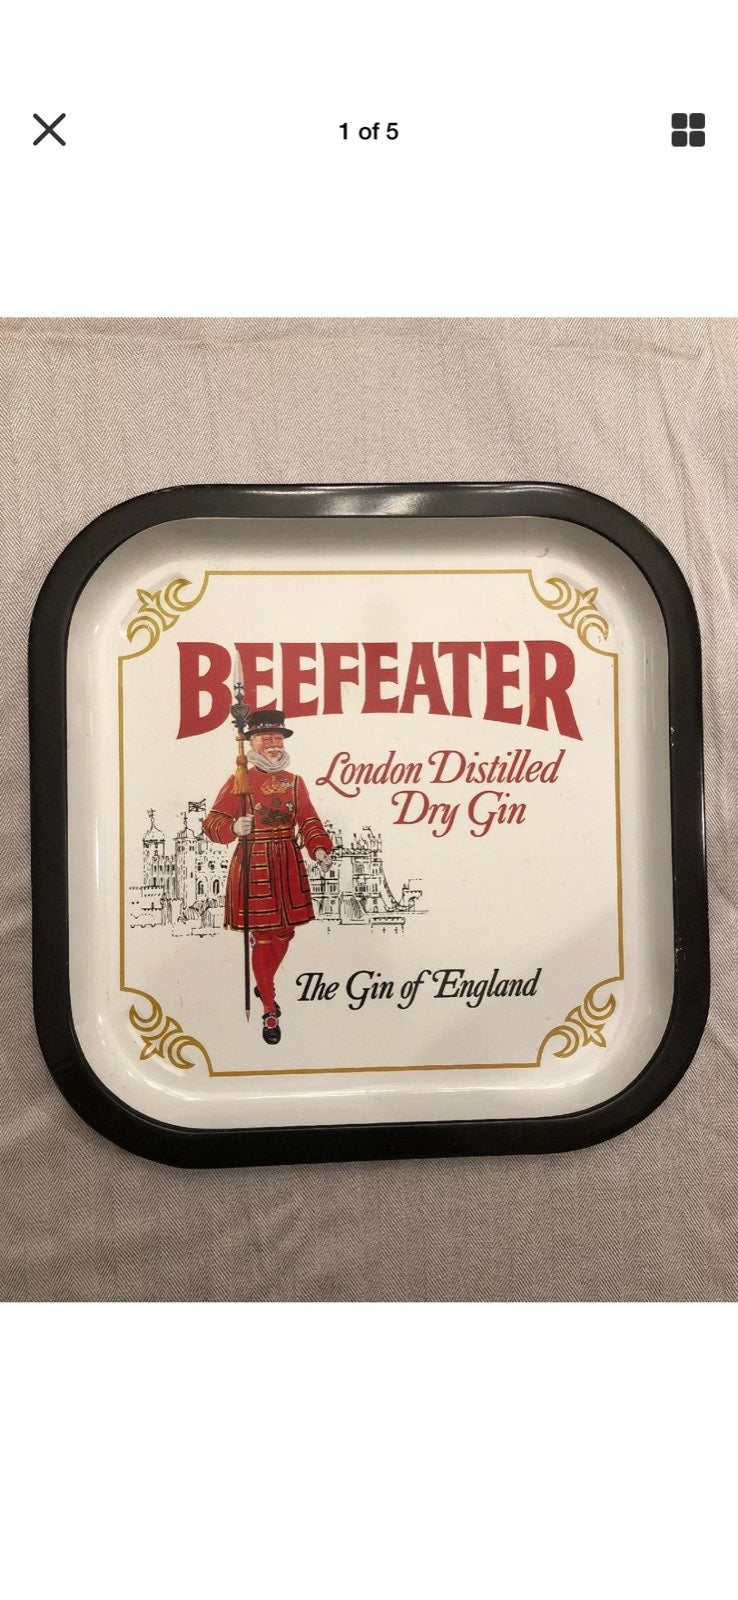 Beefeater London Distilled Dry Gin Tray